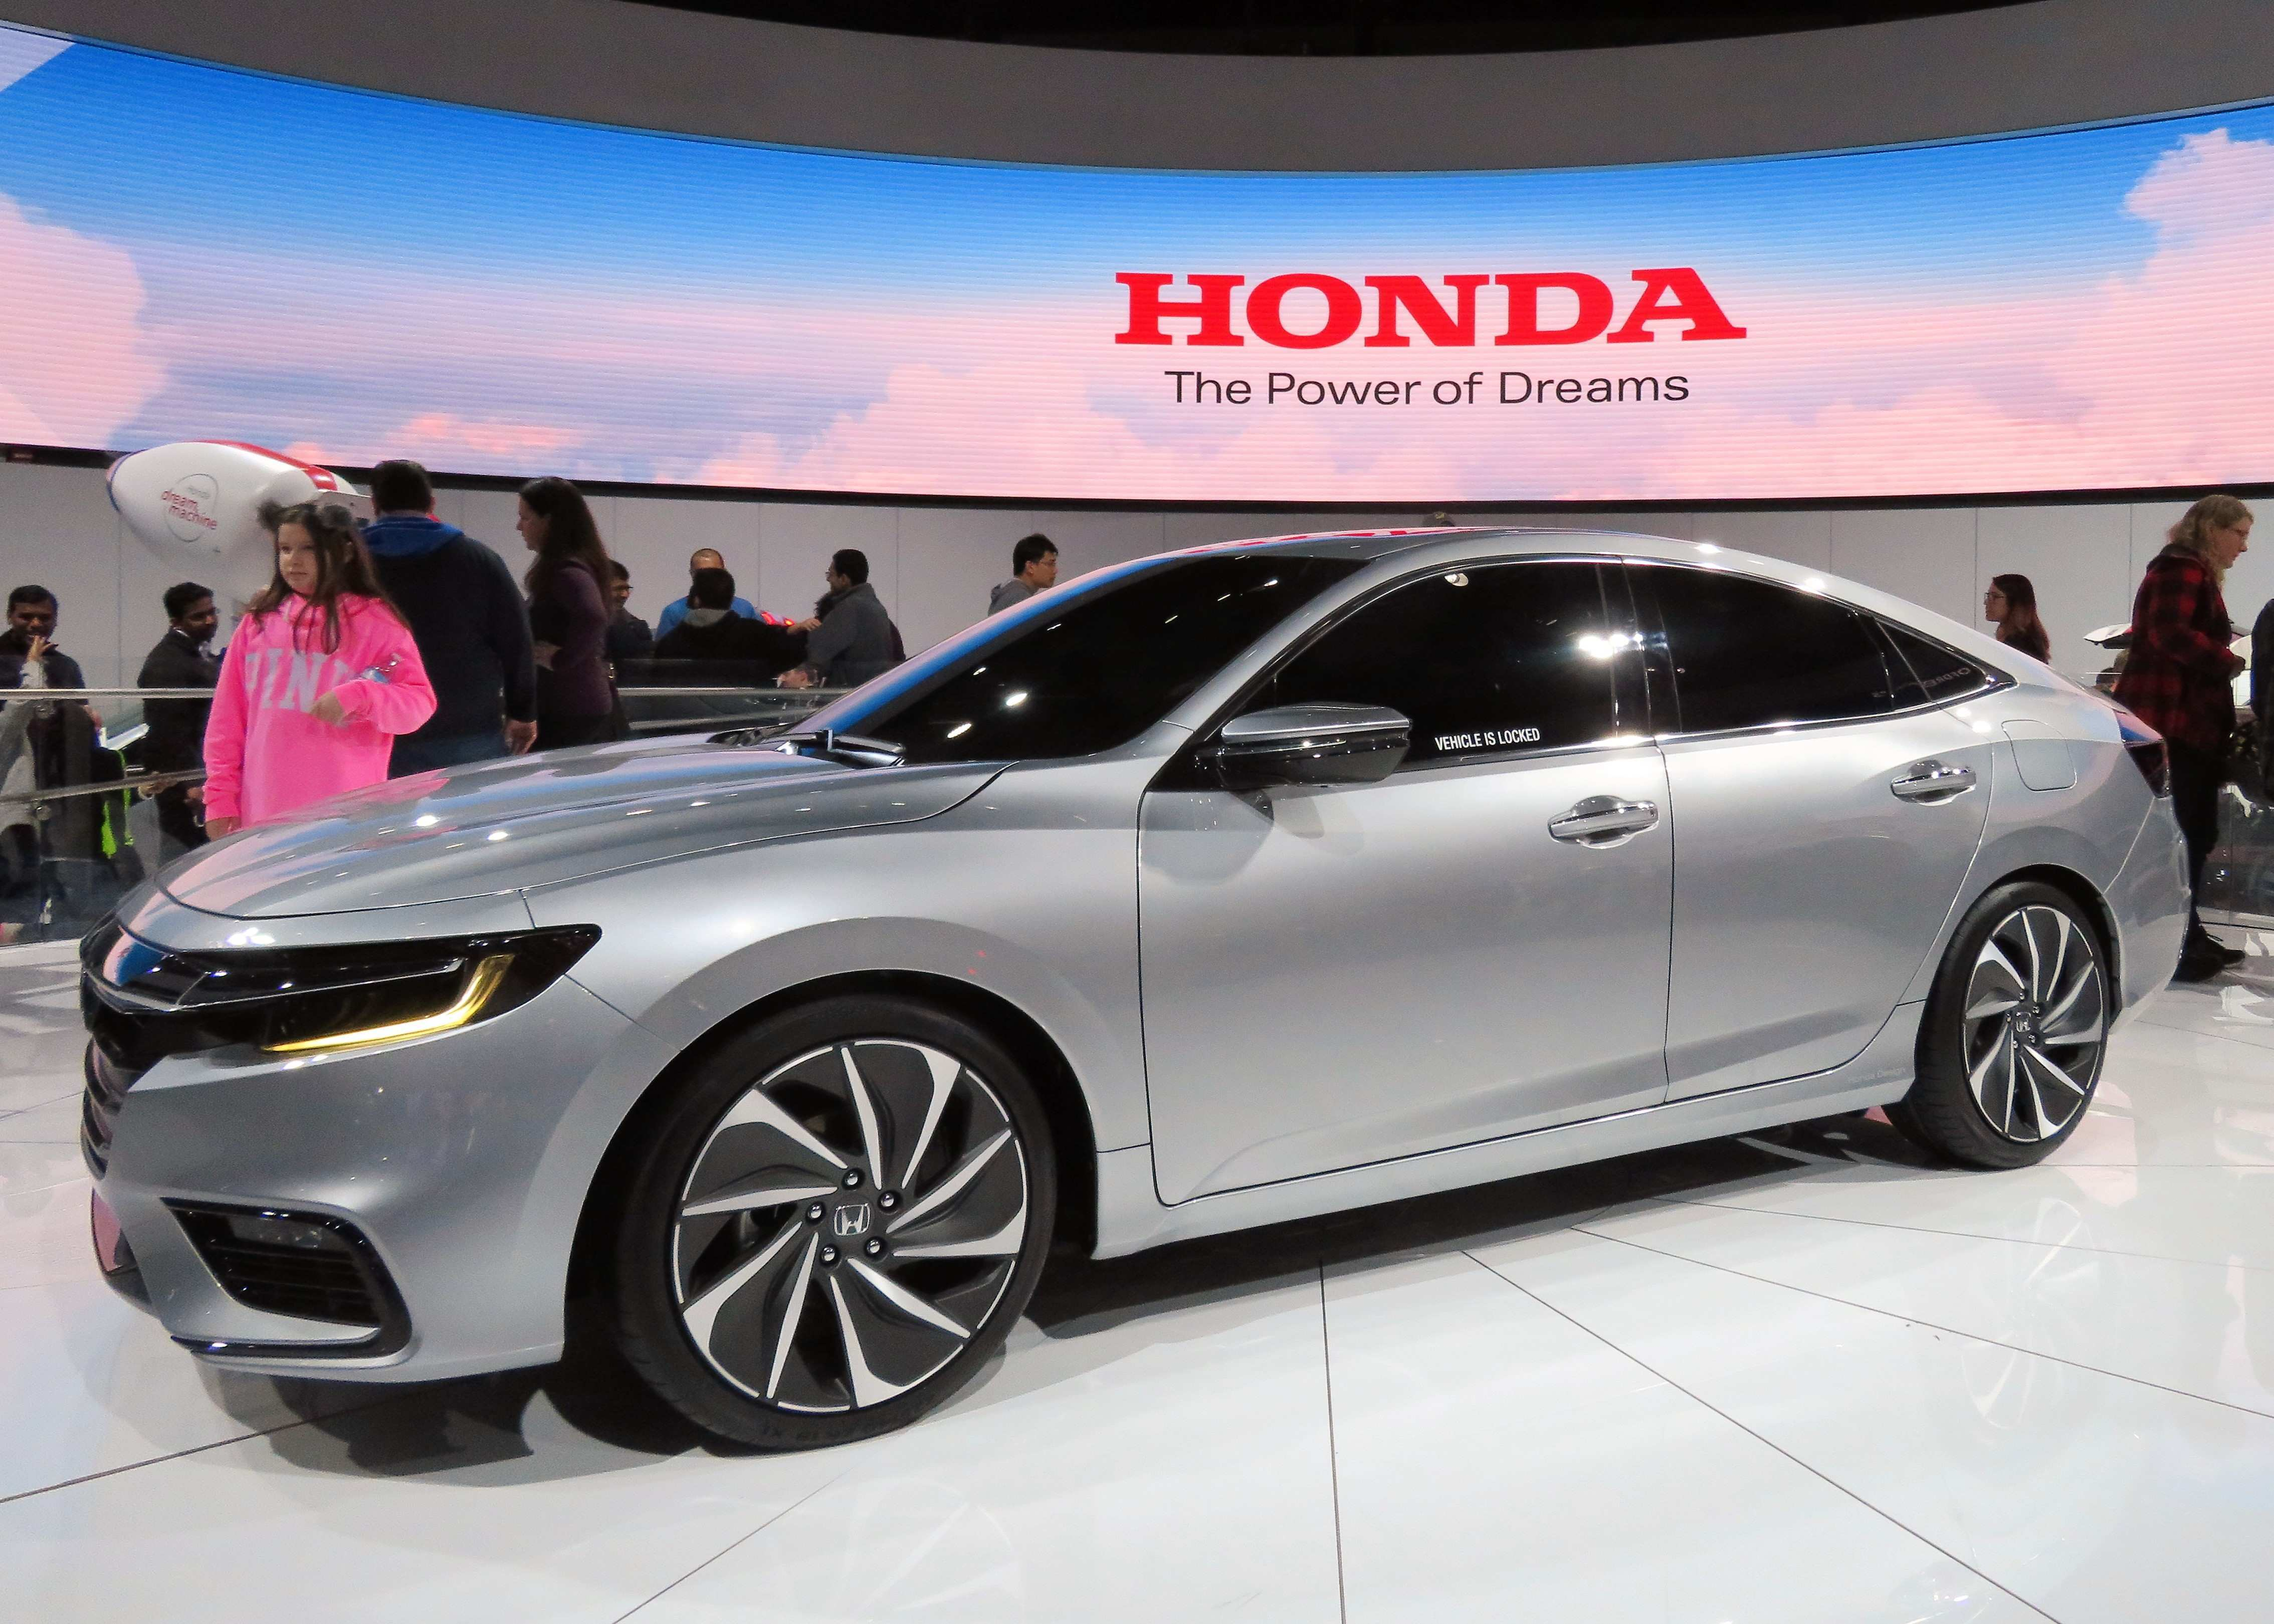 62 All New Honda Insight Hatchback 2020 Concept by Honda Insight Hatchback 2020